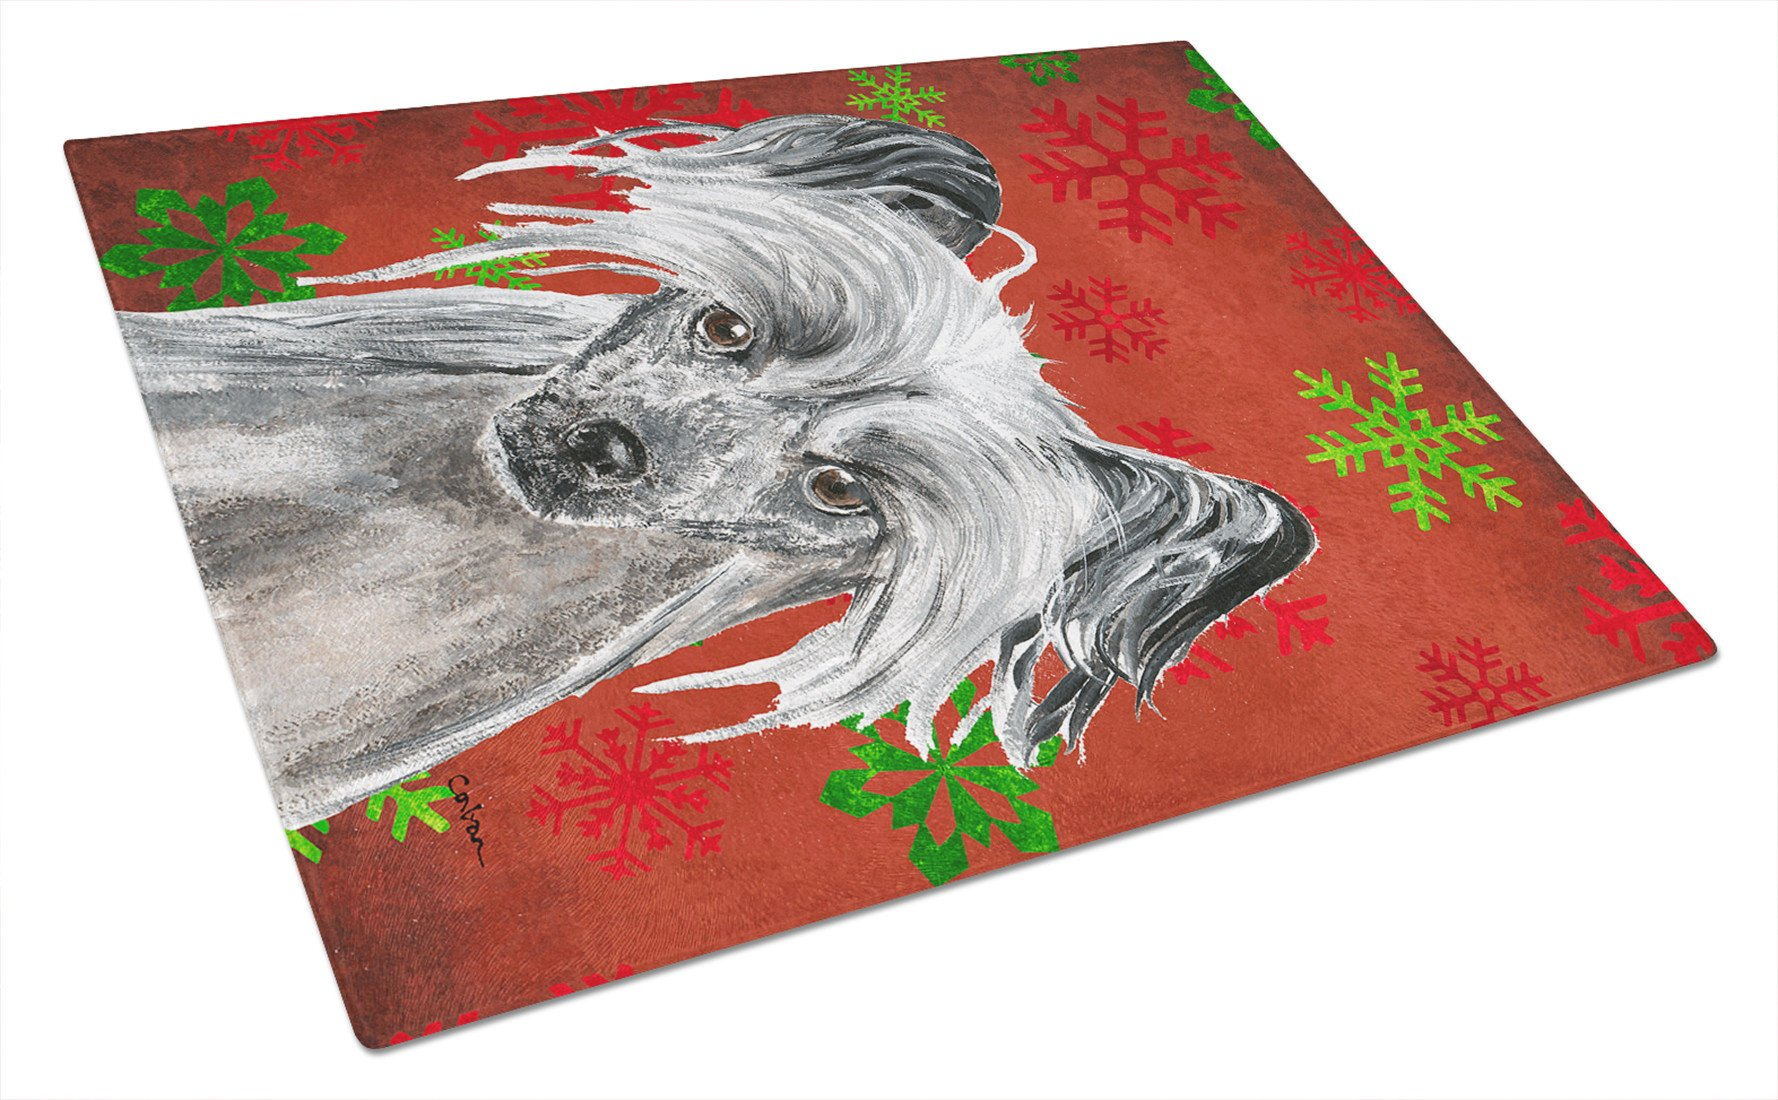 Chinese Crested Red Snowflake Christmas Glass Cutting Board Large by Caroline's Treasures